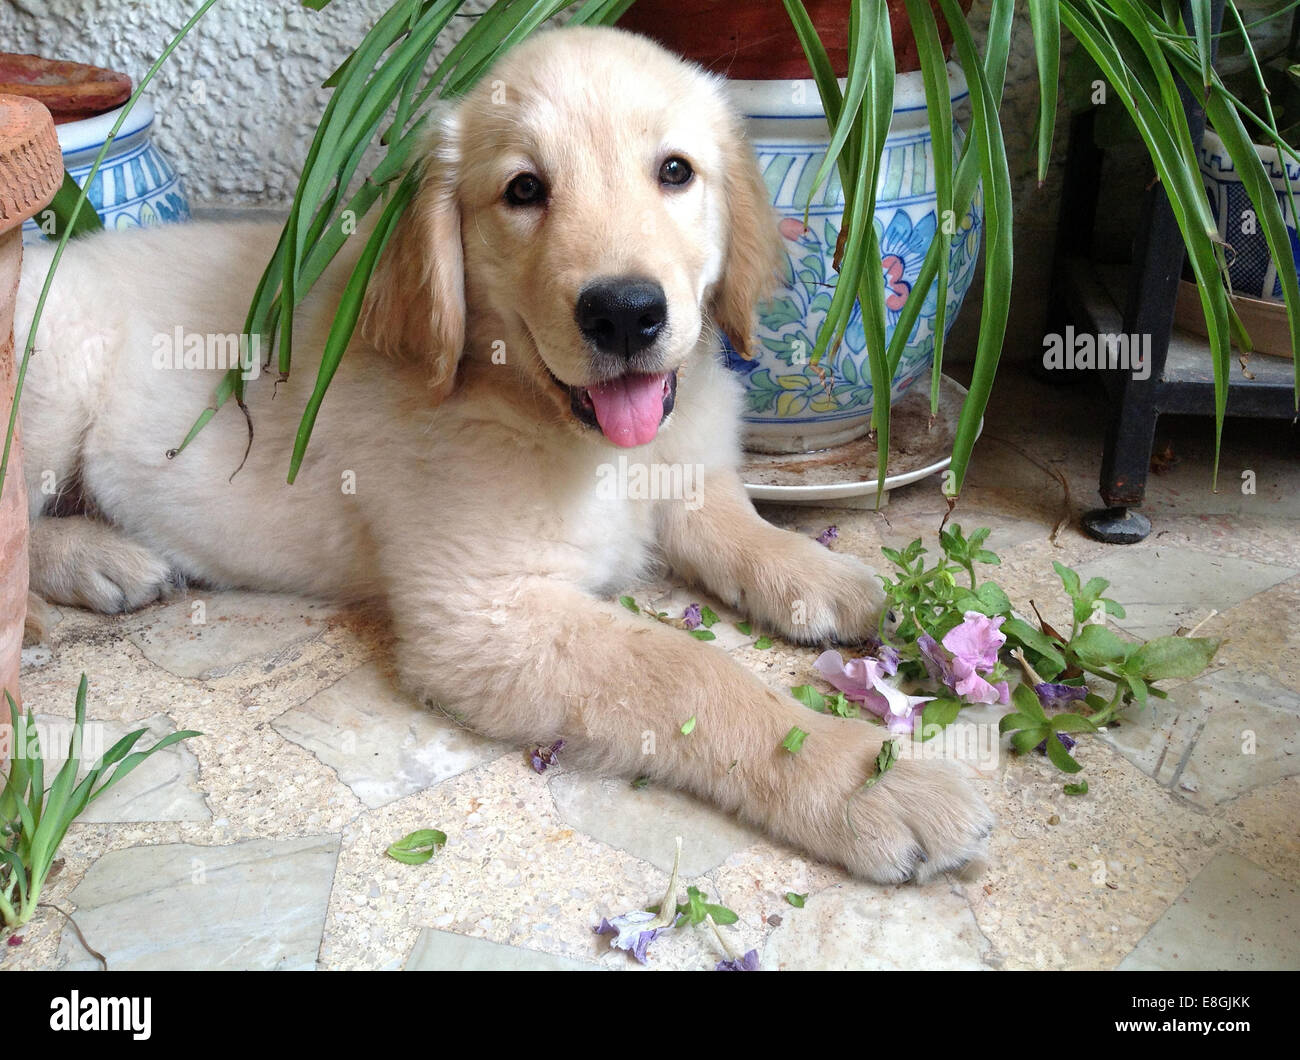 Golden Retriever puppy chewing plants - Stock Image